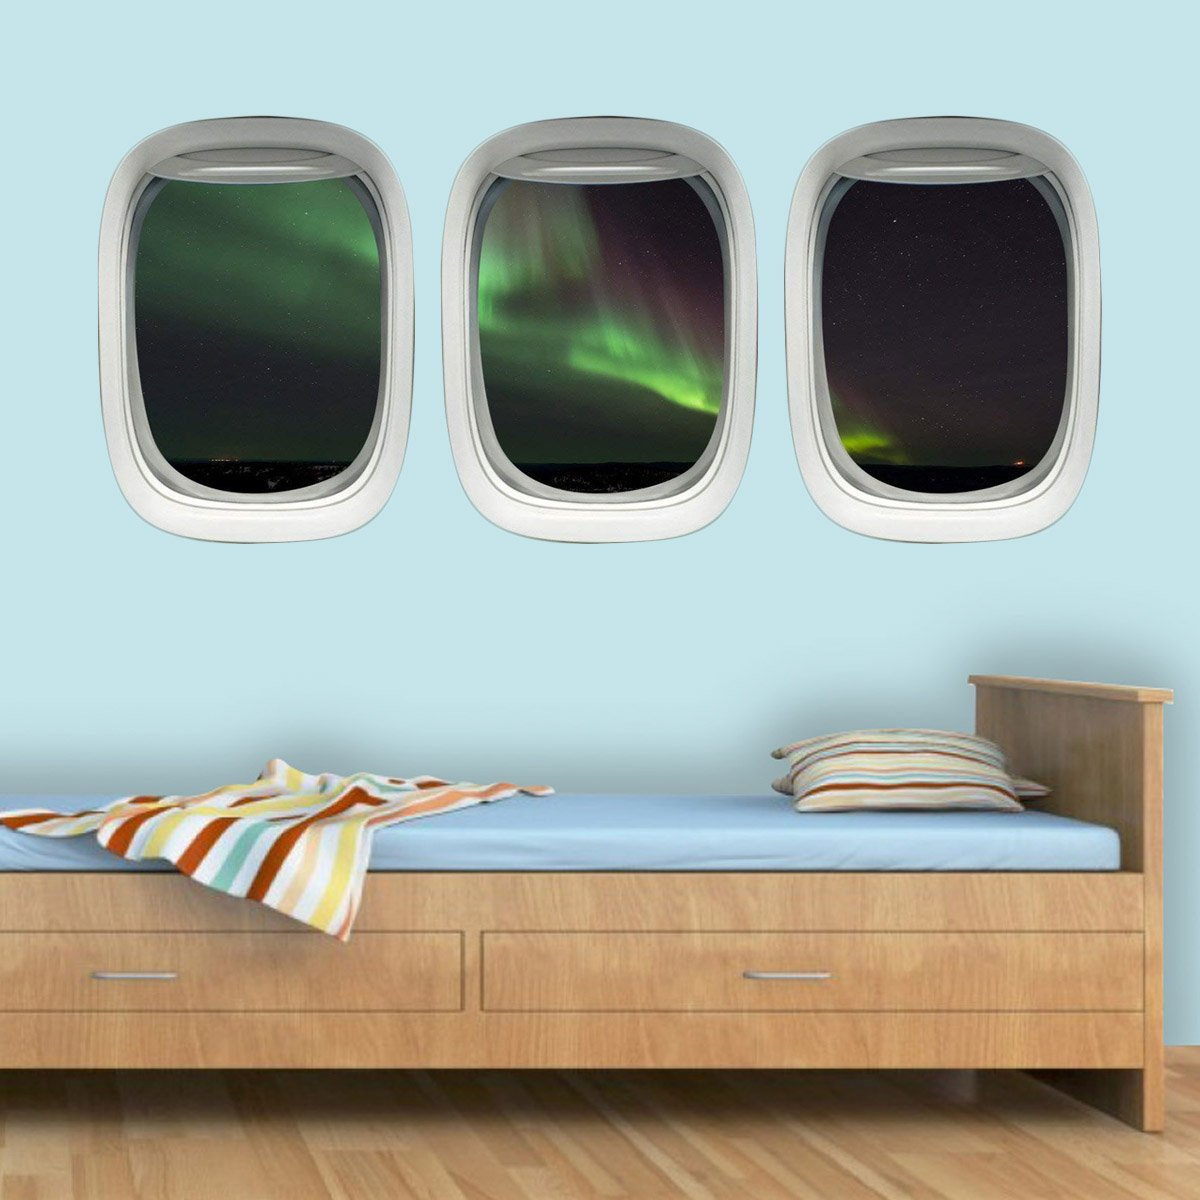 VWAQ Airplane Window Decals Northern Lights ~ Aurora Borealis Wall Art - PPW11 - VWAQ Vinyl Wall Art Quotes and Prints